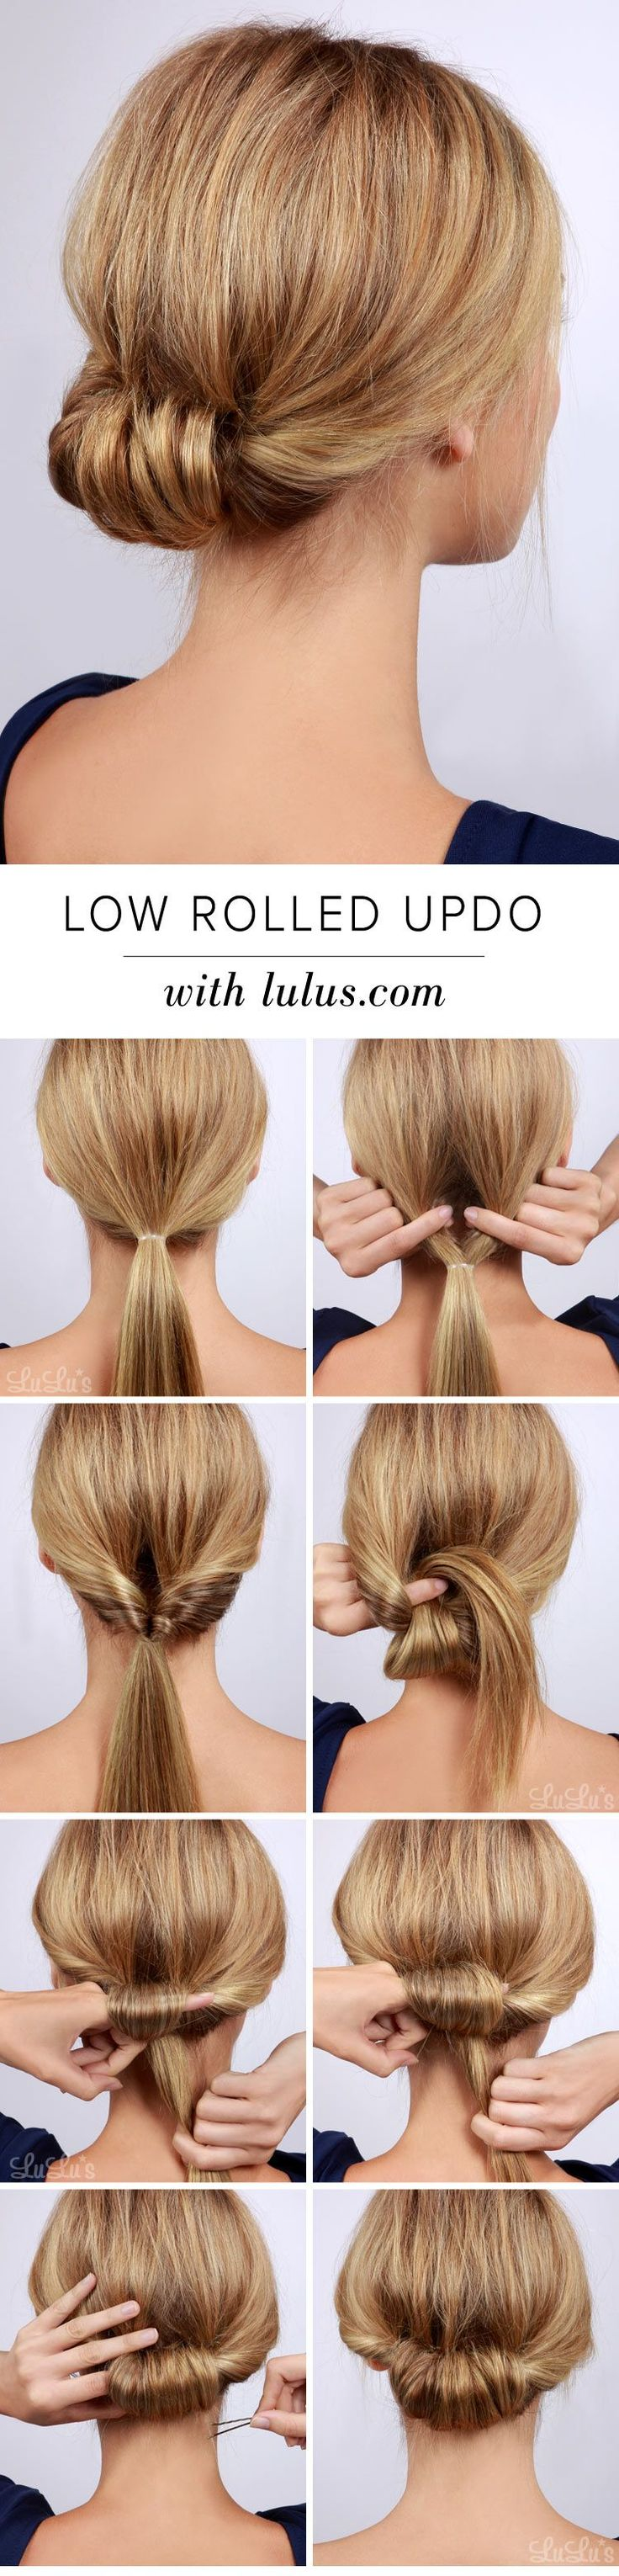 Groovy 1000 Ideas About Work Hairstyles On Pinterest Quick Work Short Hairstyles Gunalazisus